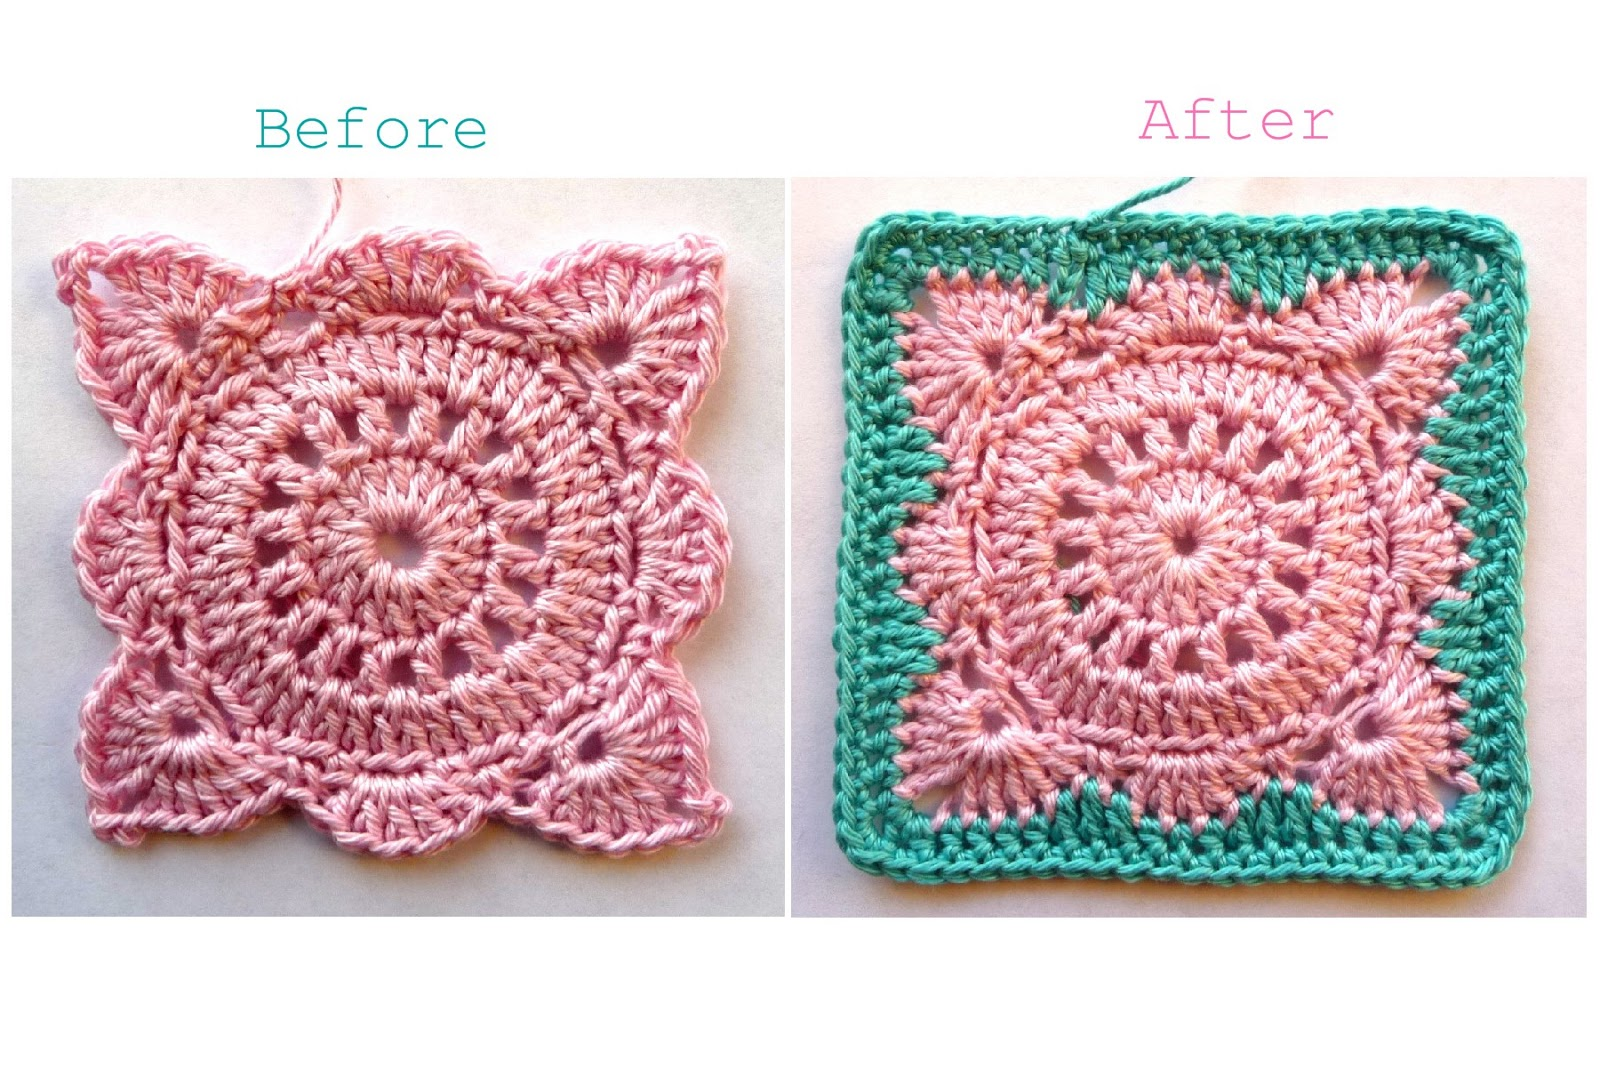 Crochet Patterns Block Afghan : Annies Place: Solid Willow Crochet Block How-To